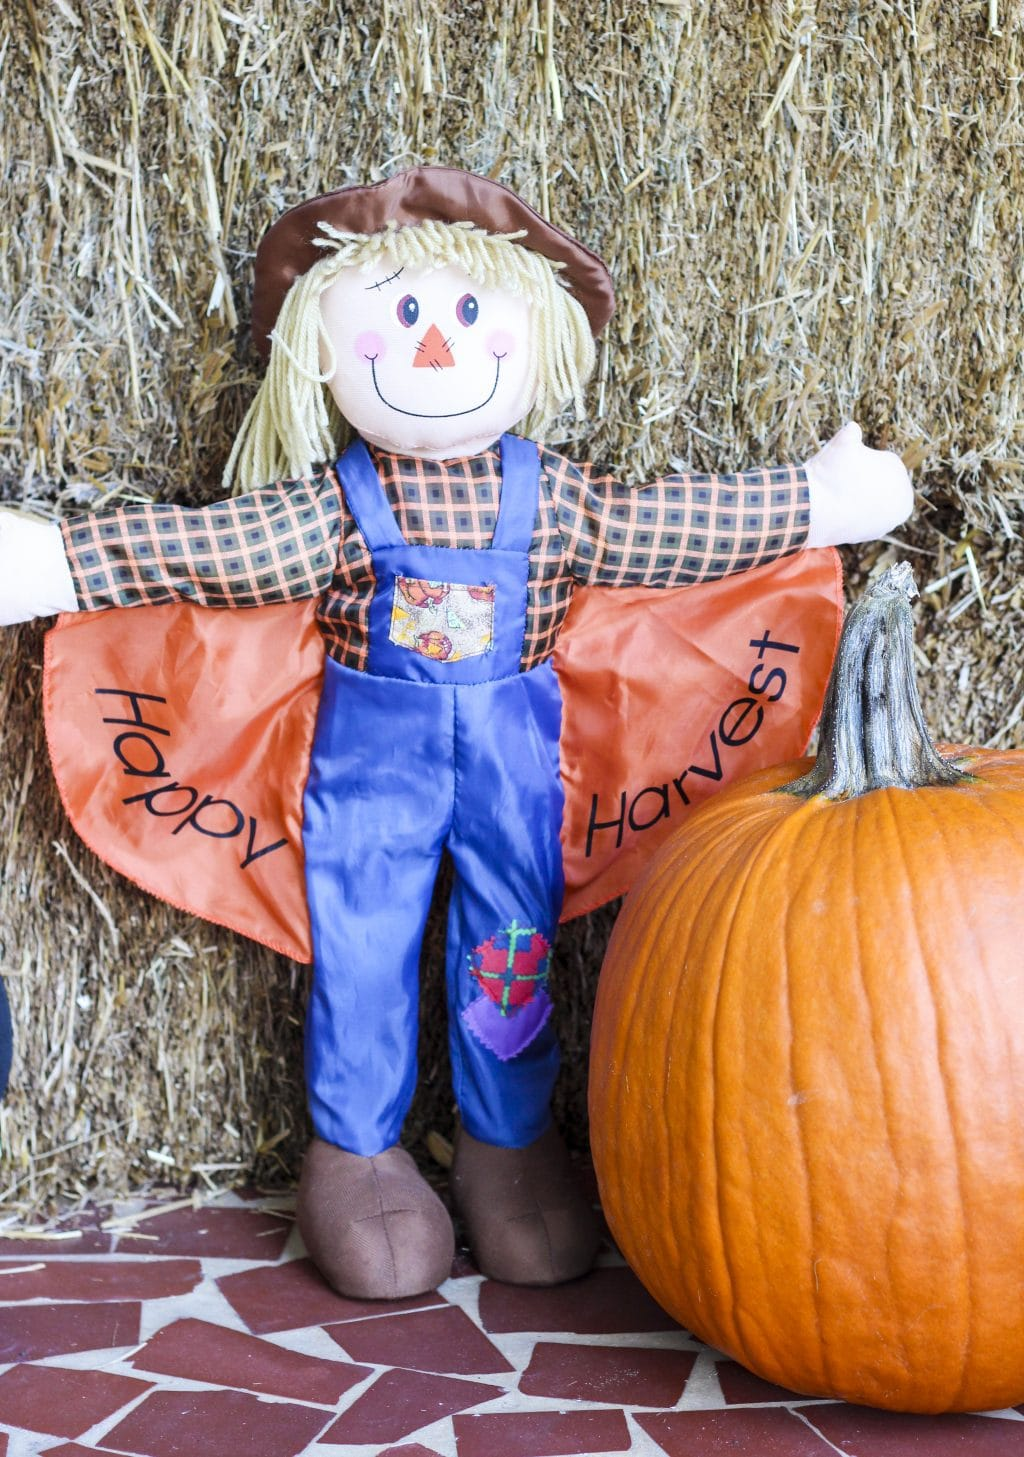 A large scarecrow next to a pumpkin a hay bale.